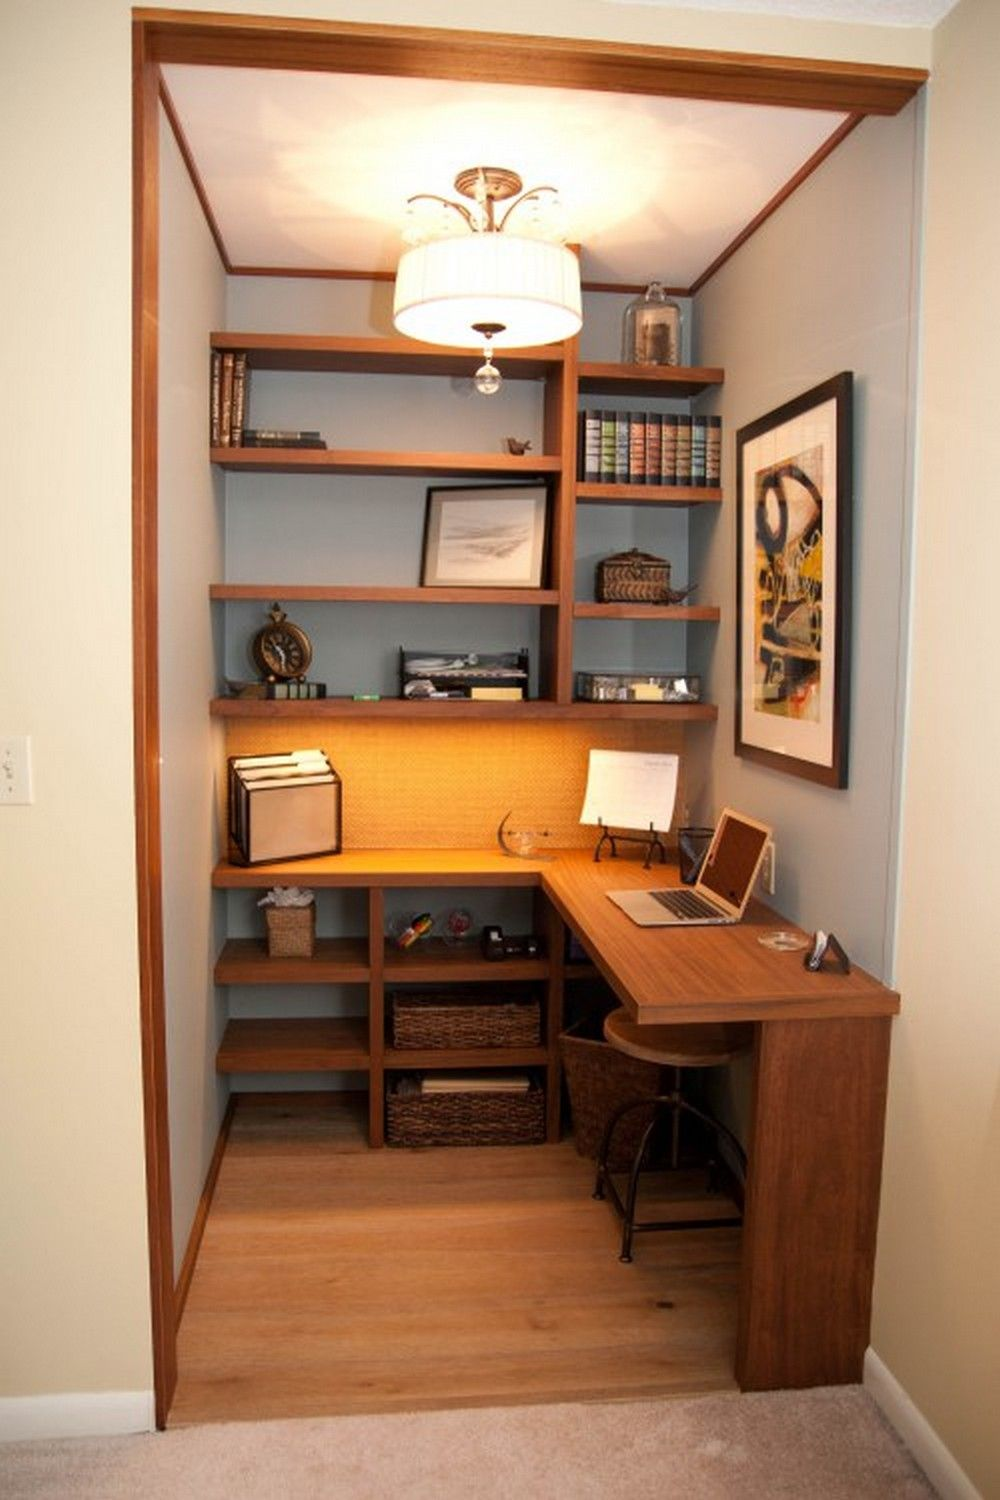 25 Small Space Ideas For The Bedroom And Home Office | HOMEDECORT